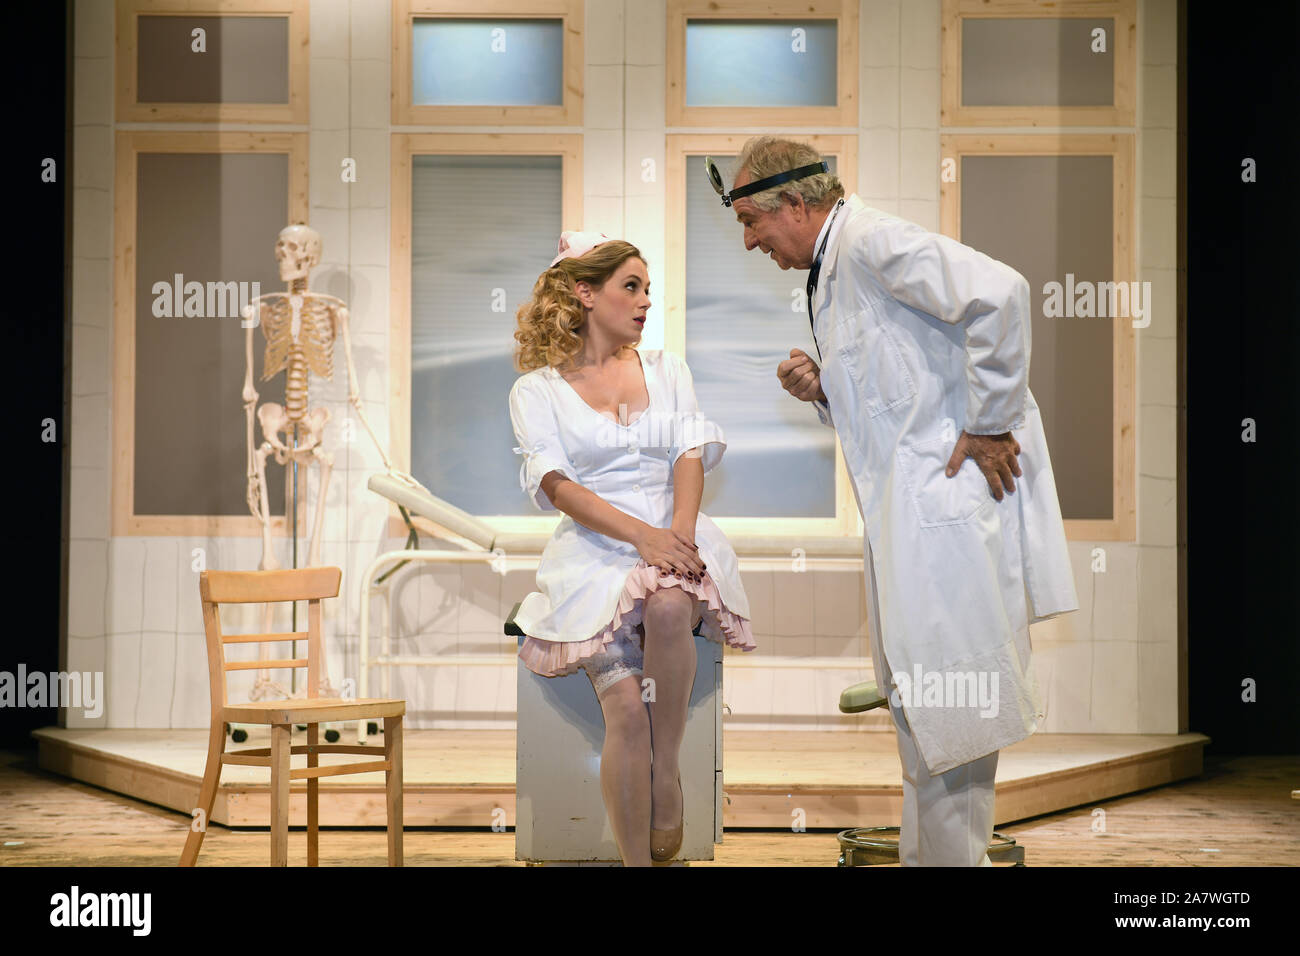 """Munich, Germany. 04th Nov, 2019. The actress Anne Bedenbender (l) is on stage with the actor Friedrich von Thun at the photo rehearsal """"Sonny Boys"""" in the comedy at the Bayerischer Hof. Credit: Felix Hörhager/dpa/Alamy Live News Stock Photo"""